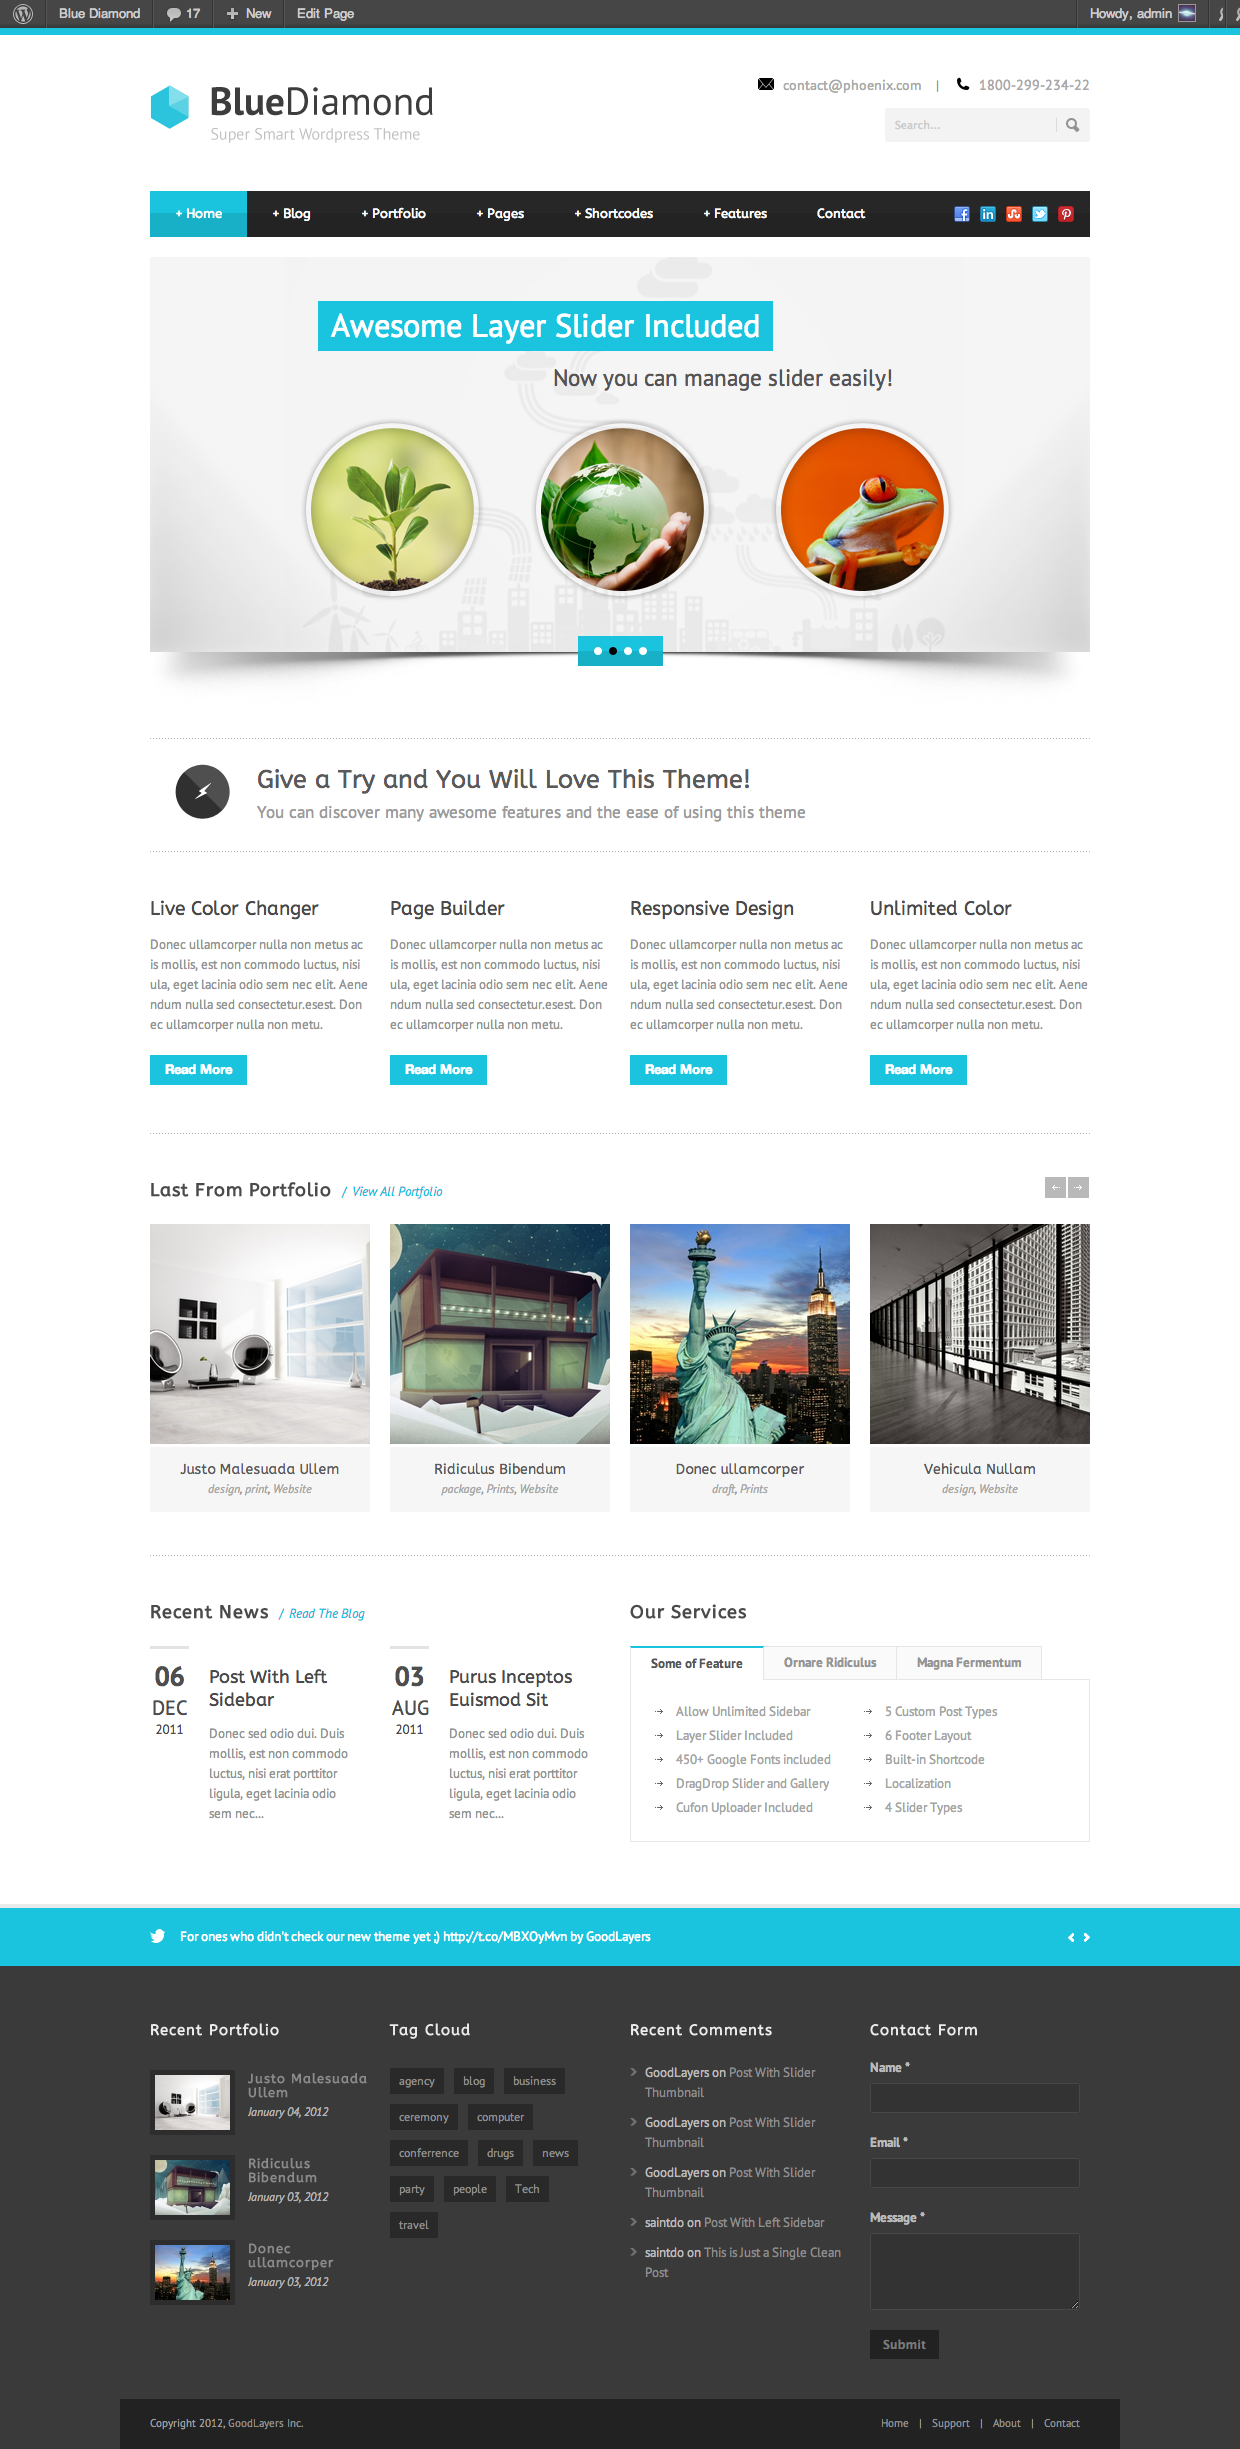 Blue Diamond - Responsive Corporate WP Theme - index page with color changed